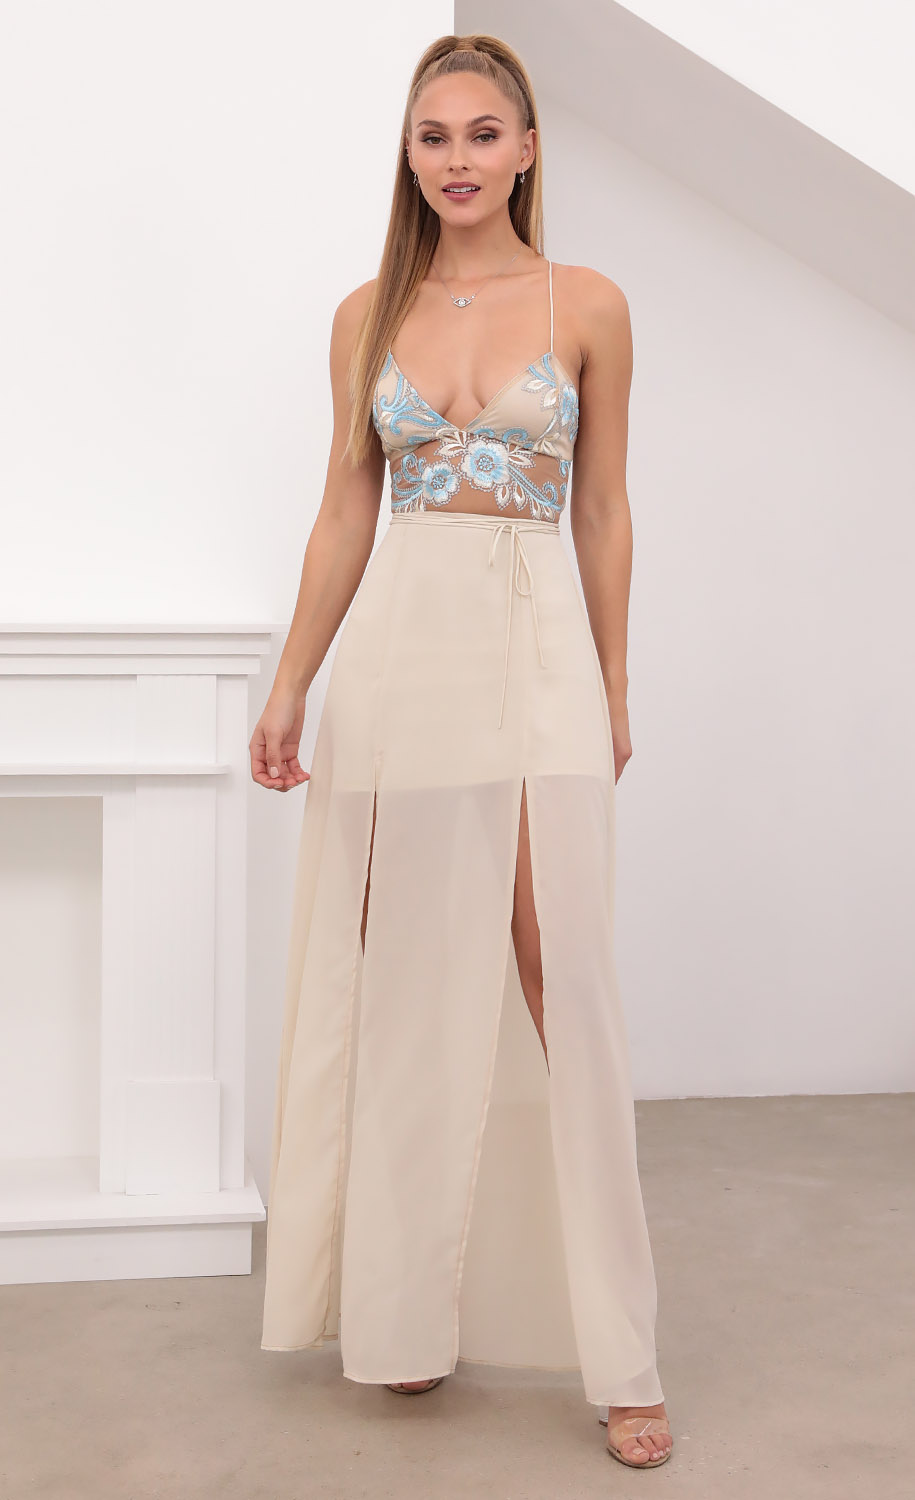 Lovable Gold Lace Maxi Dress in Sand